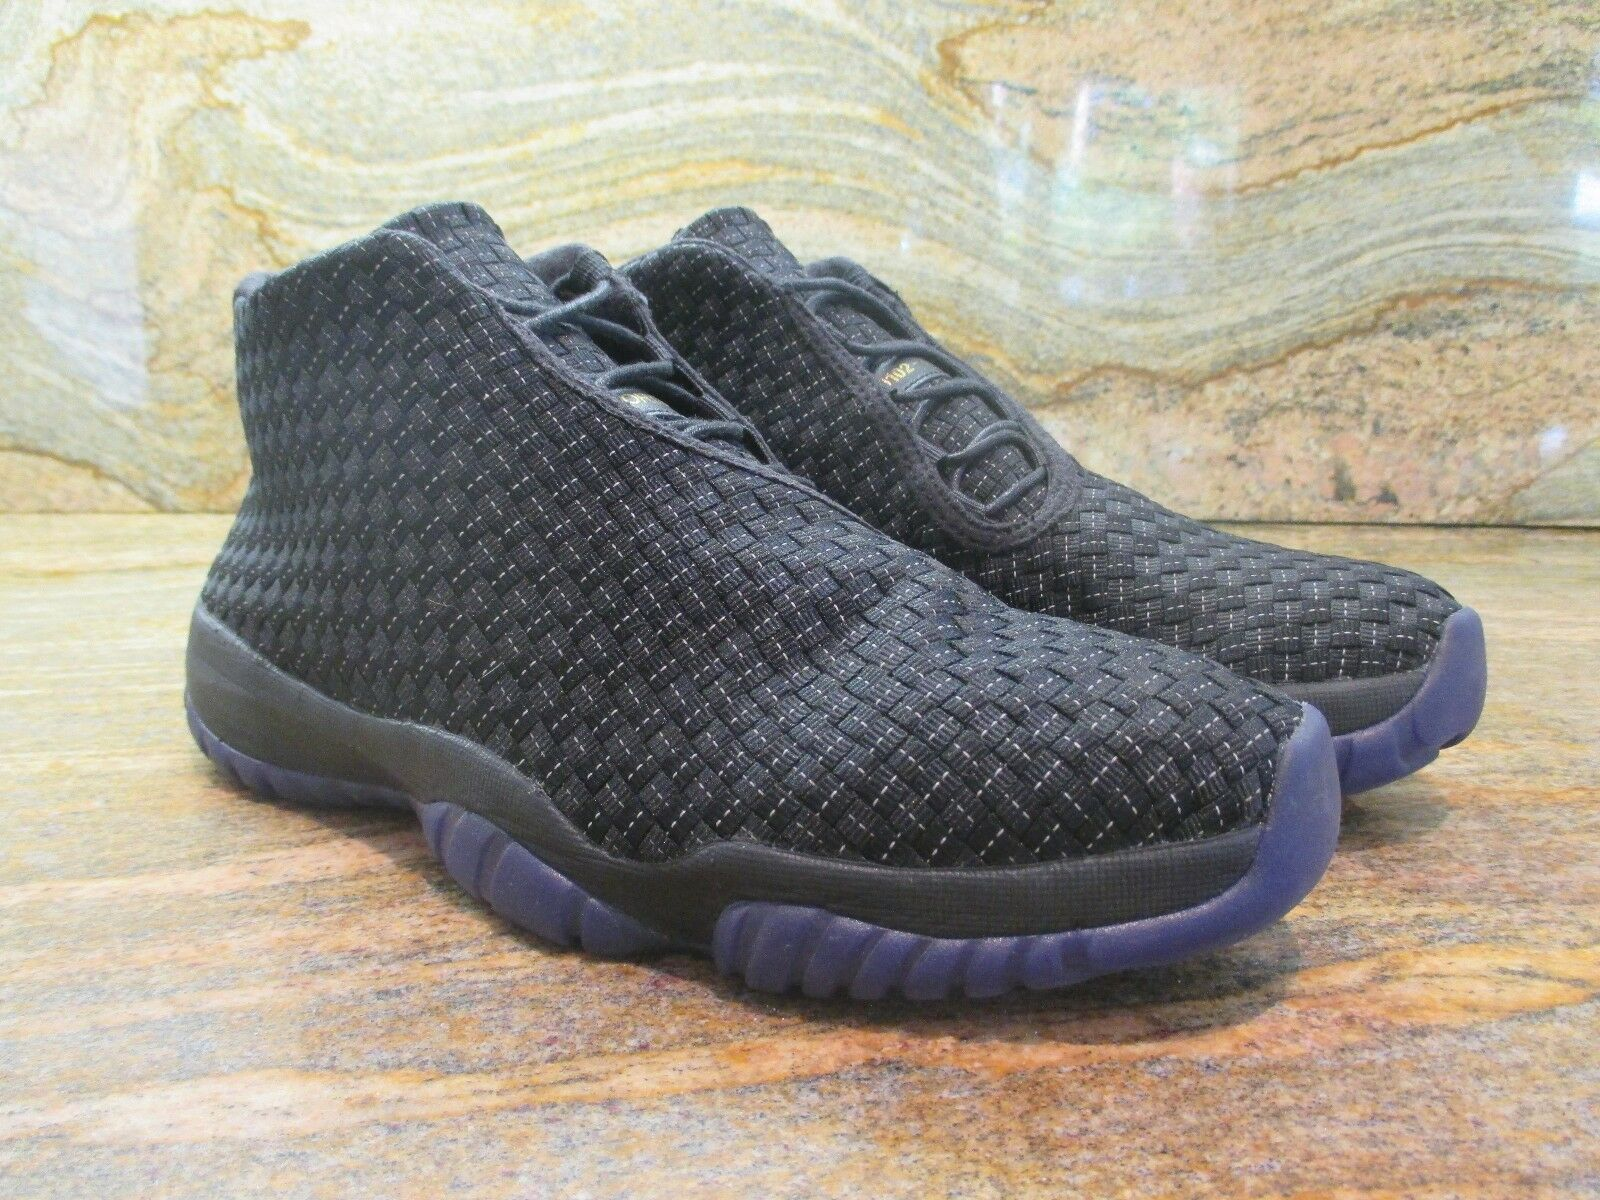 39bf631ef3ac9 Nike Air Jordan Future Premium UNRELEASED SAMPLE SZ 9 Retro 11 Pinnacle  Concord